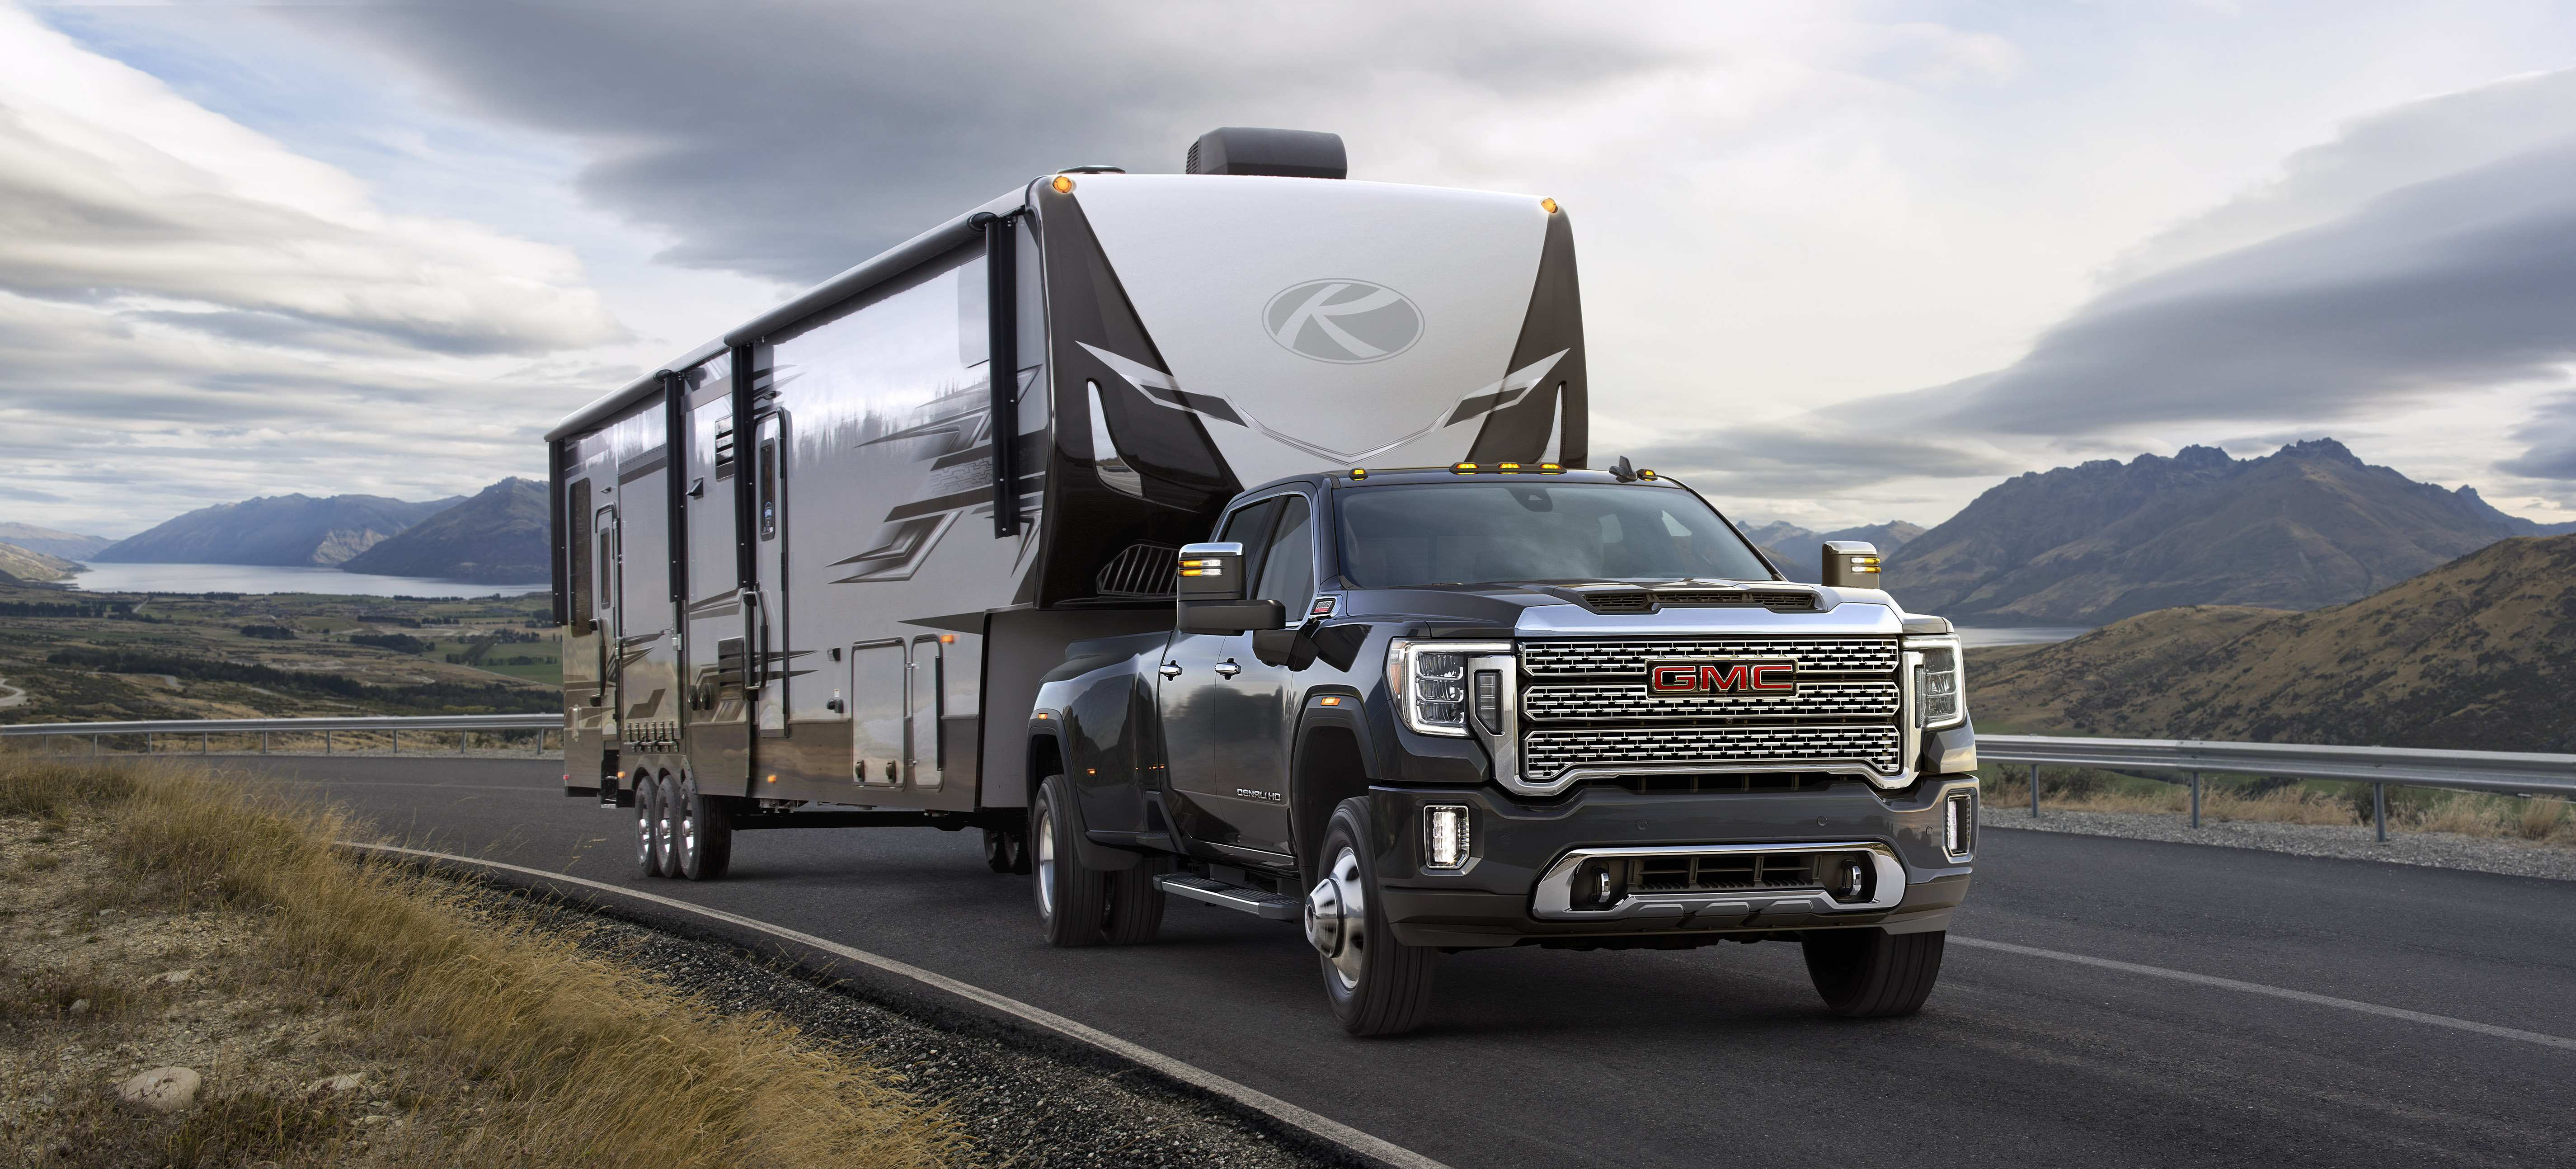 51 Best Review 2020 Gmc 2500 Price Engine by 2020 Gmc 2500 Price